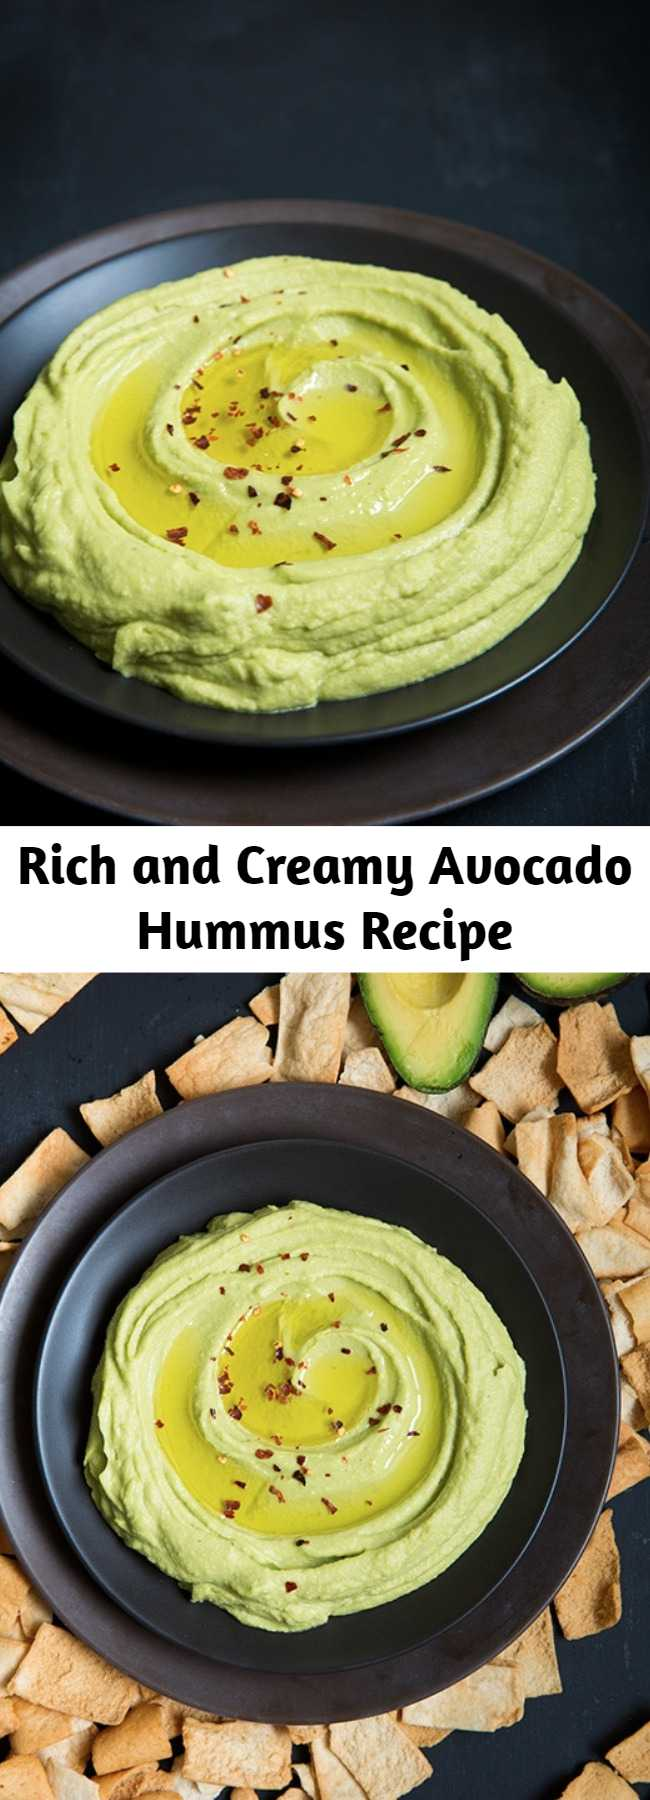 Rich and Creamy Avocado Hummus Recipe - This is the best hummus! It's rich and creamy and packed with that irresistible avocado flavor. Think hummus meets guacamole, I mean what more could you want? Perfect dip for veggies or pita chips or as a spread for your favorite sandwiches.